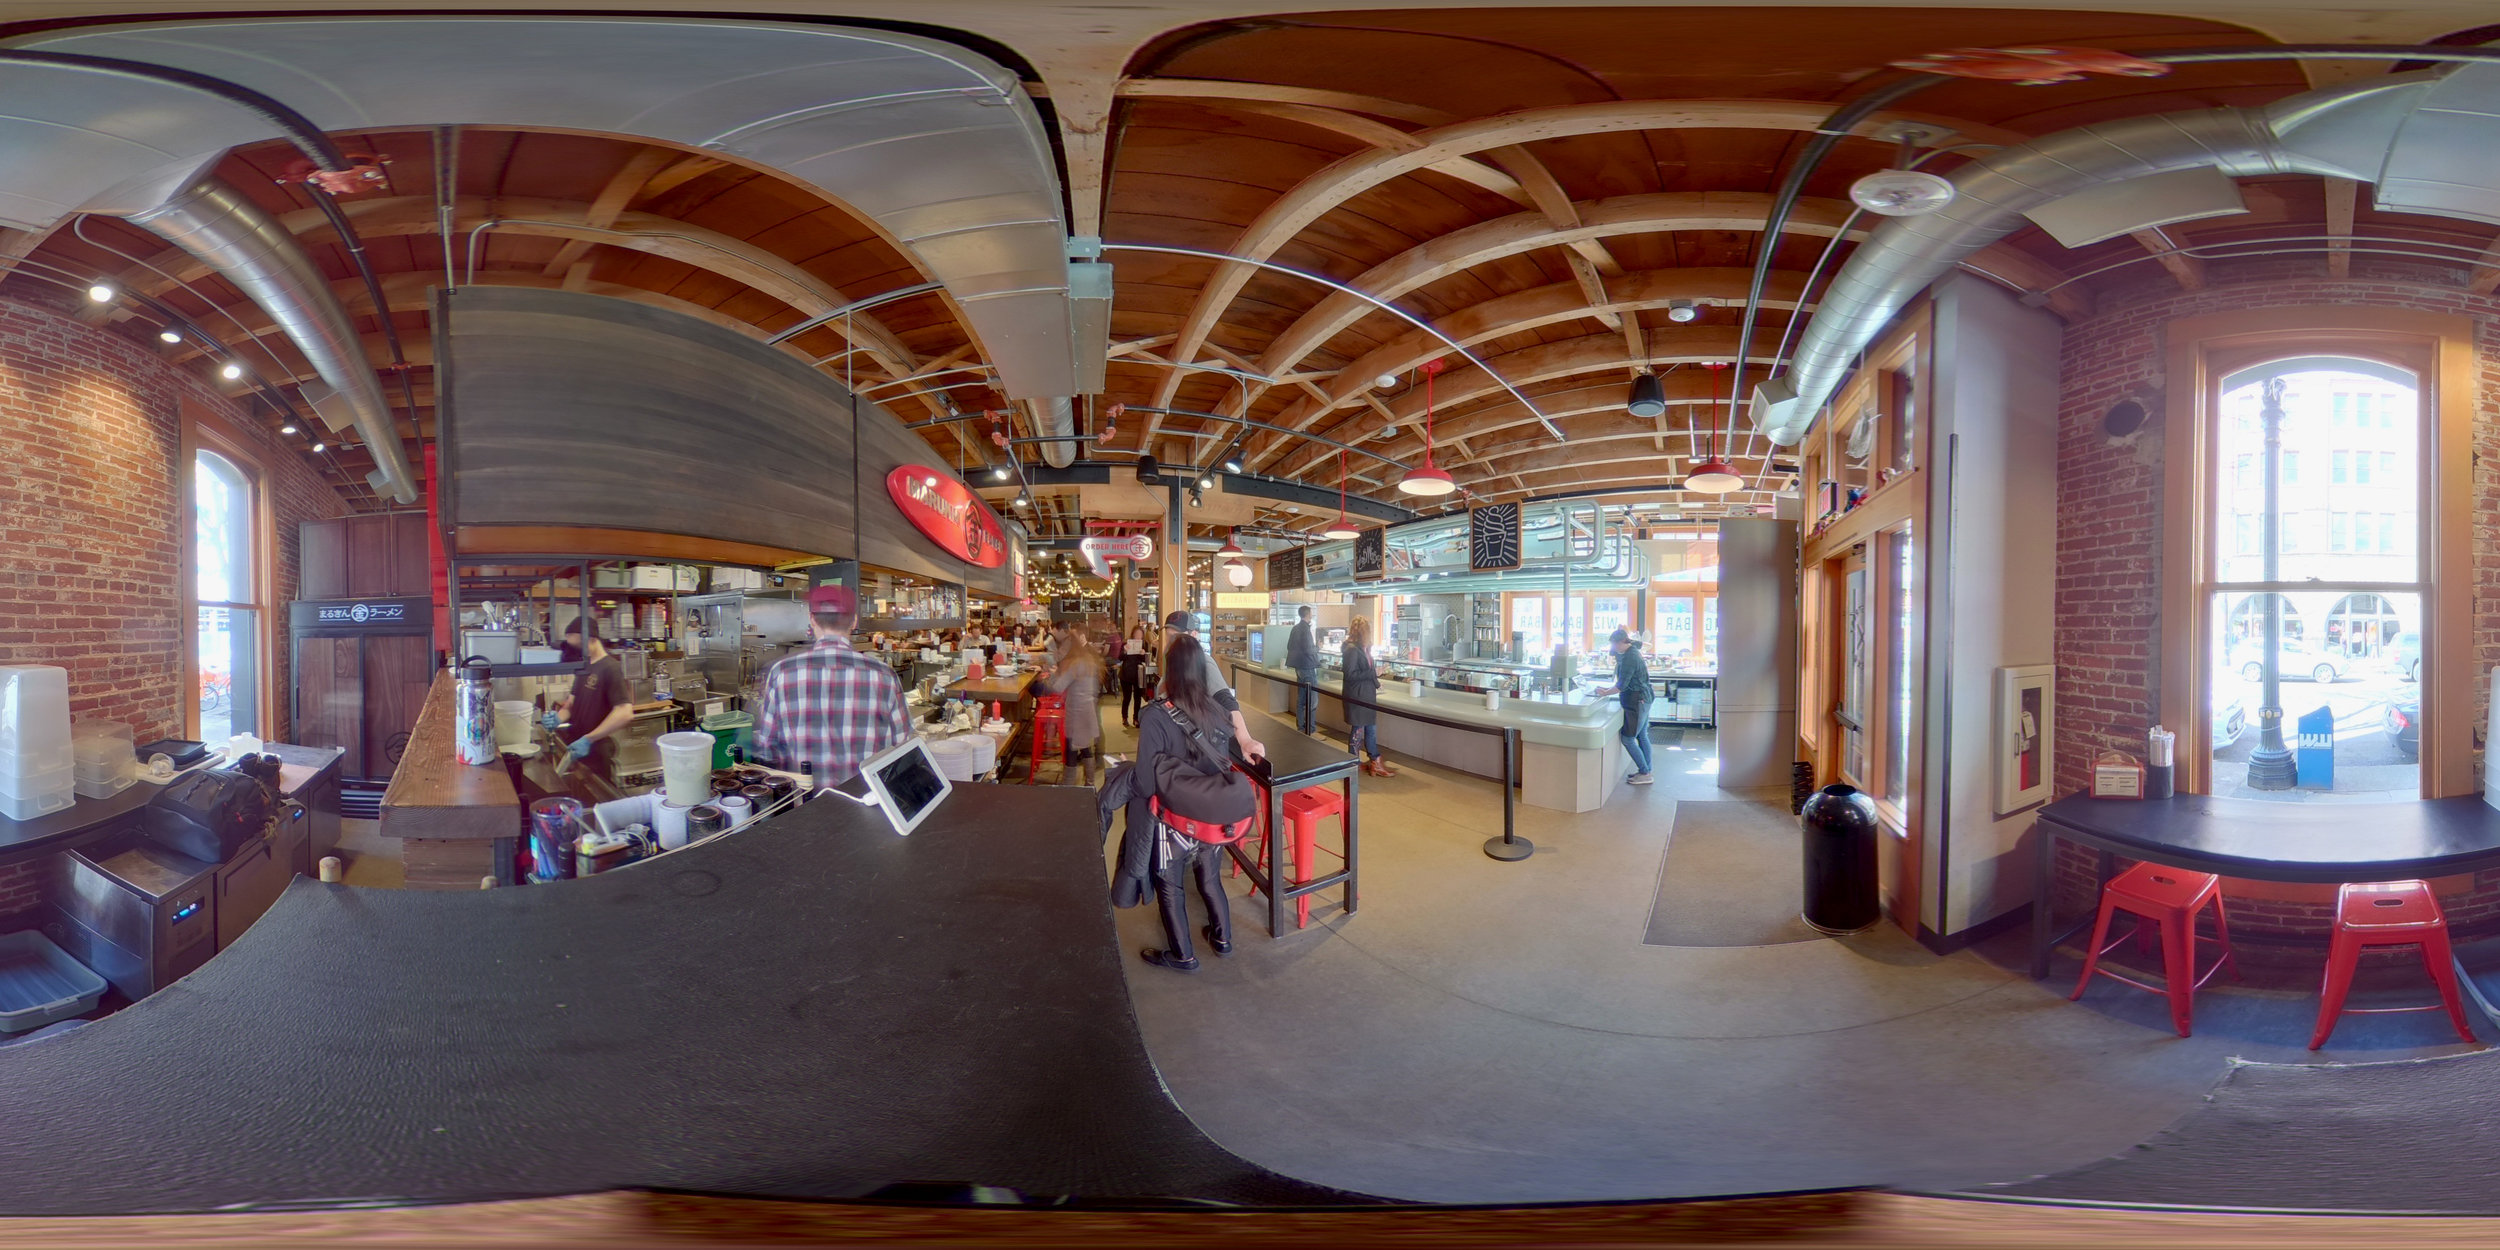 This is a photosphere of Marukin Ramen and the Pine Street Market, a gathering of eateries located in Portland, Oregon.